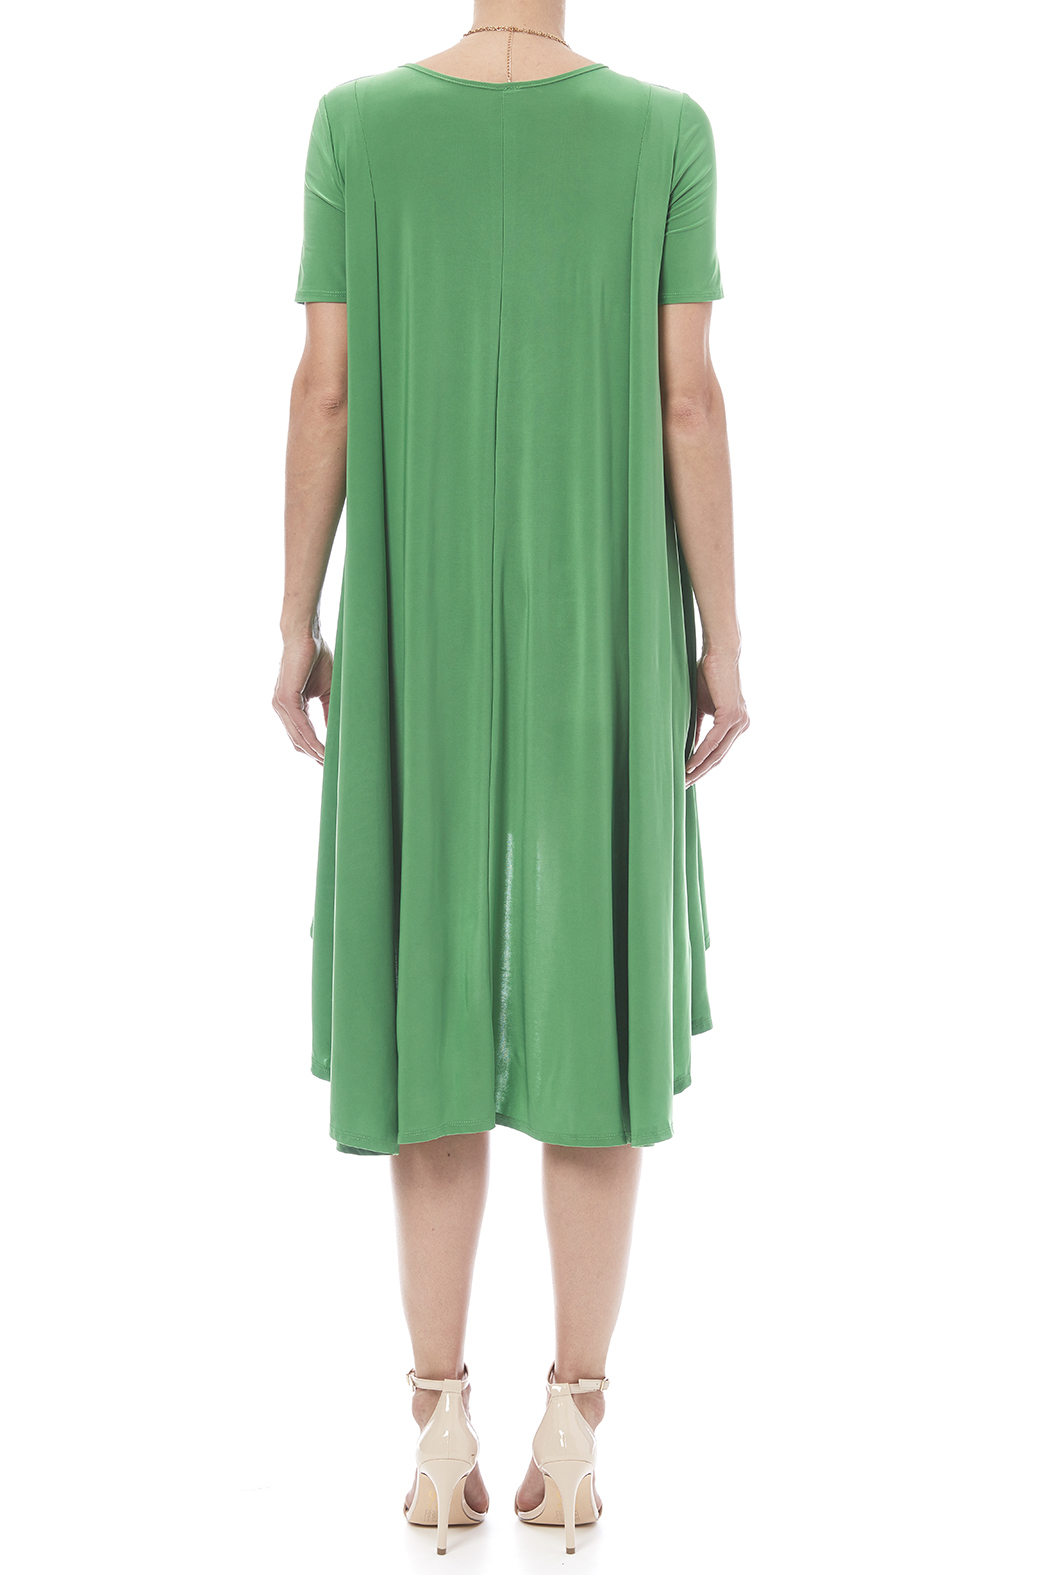 Solo La Fee Emerald High Low Dress - Back Cropped Image